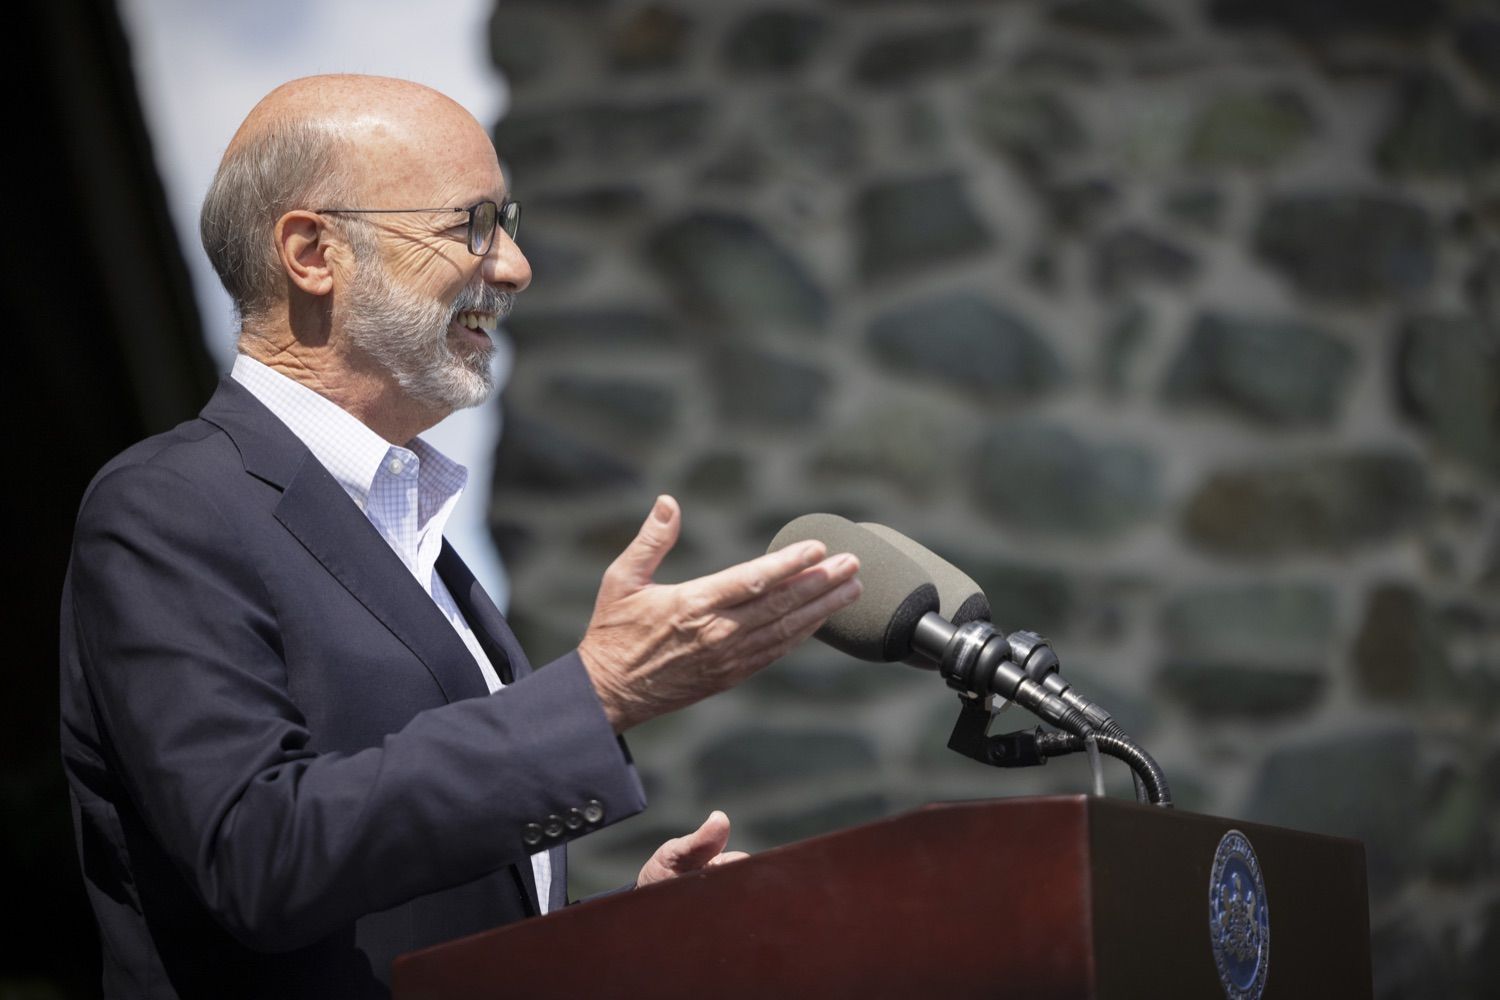 """<a href=""""https://filesource.wostreaming.net/commonwealthofpa/photo/19111_gov_parkVaccines_dz_021.jpg"""" target=""""_blank"""">⇣Download Photo<br></a>Pennsylvania Governor Tom Wolf speaking with the press.  Governor Tom Wolf today announced that the Department of Health (DOH) and Department of Conservation and Natural Resources (DCNR) are partnering to hold COVID-19 vaccine clinics at five state parks across the commonwealth to help expand access to the COVID-19 vaccine.  Harrisburg, PA -- September 10, 2021"""